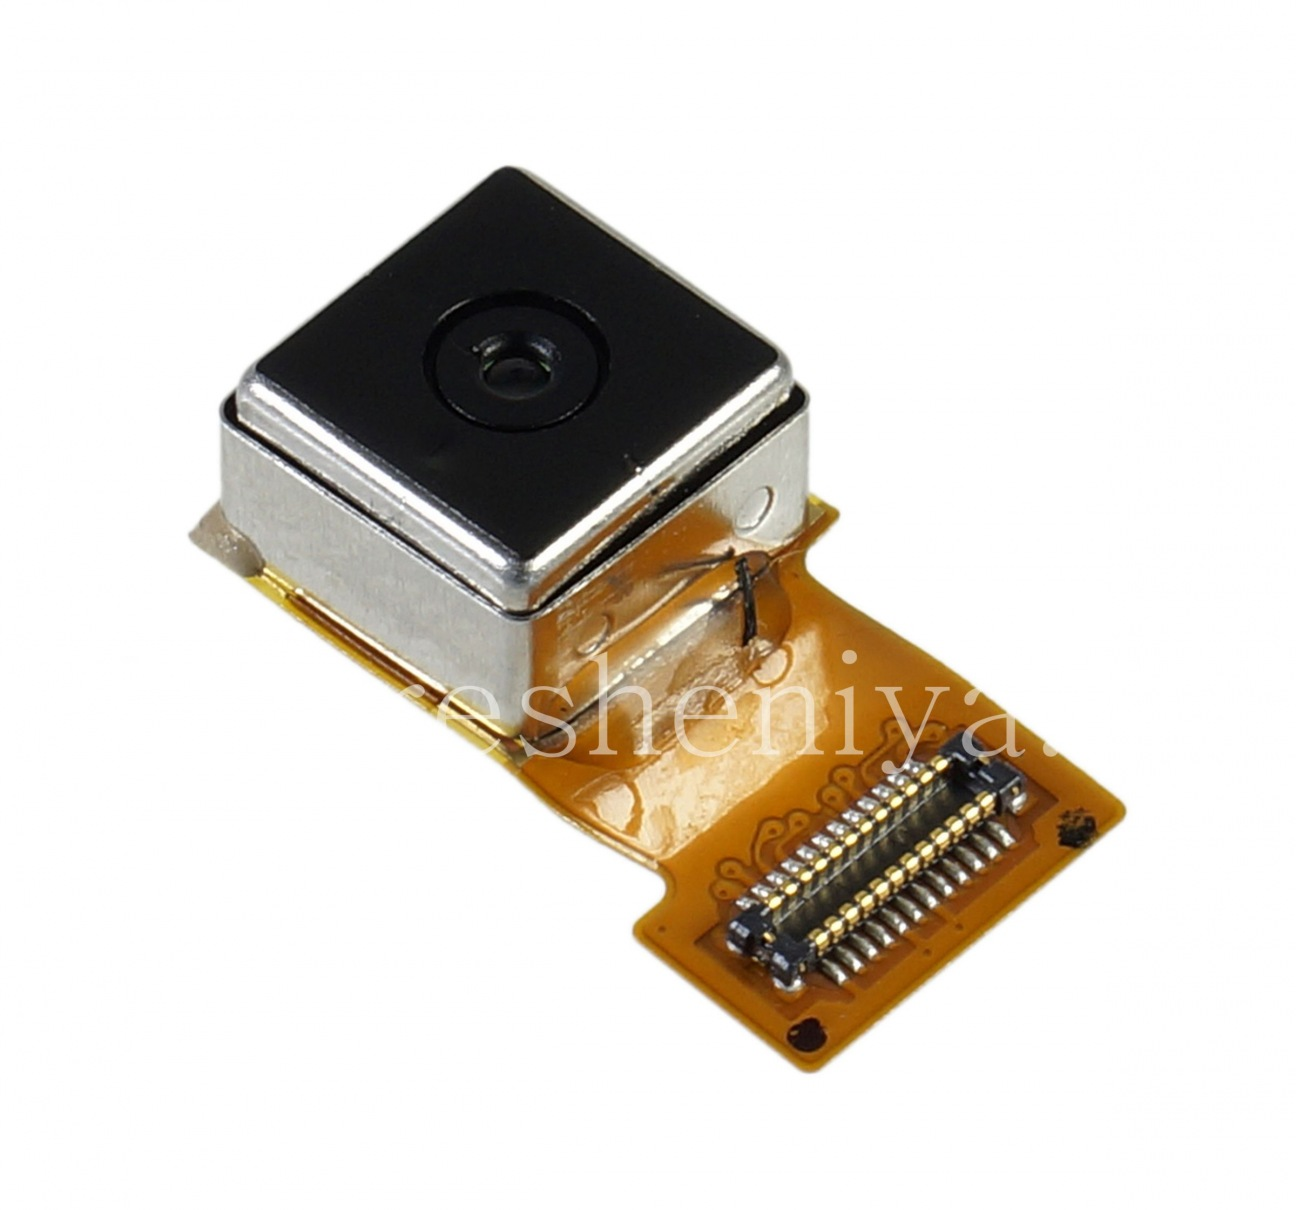 T23 main camera for BlackBerry Z3 — Everything for BlackBerry   InfoResheniya / bbry net